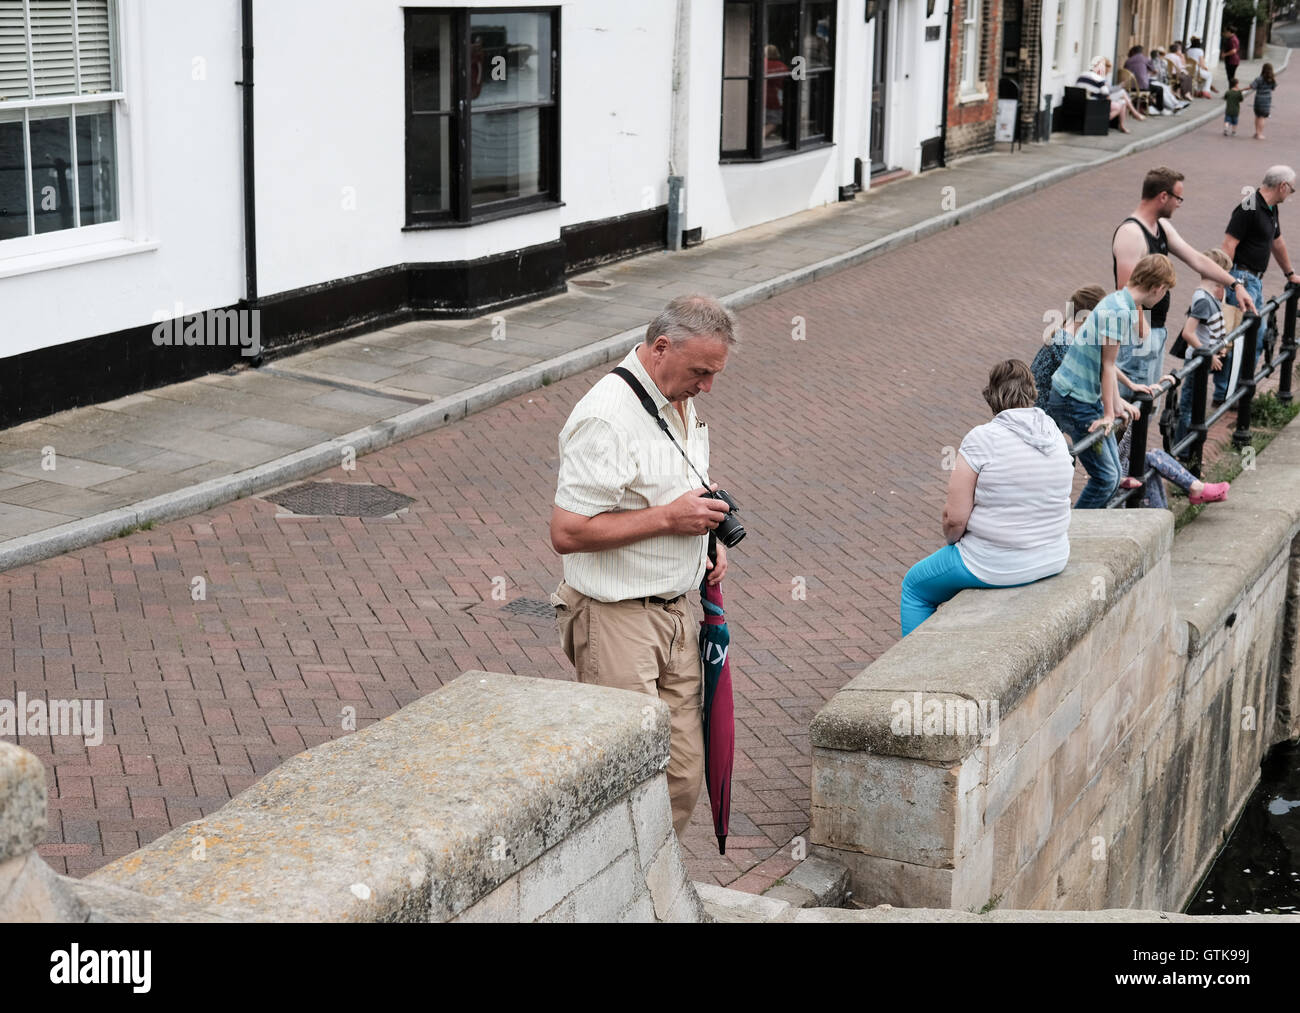 Amateur photographer seen with his camera at the market town of Saint Ives, Cambridgeshire during the summer. - Stock Image